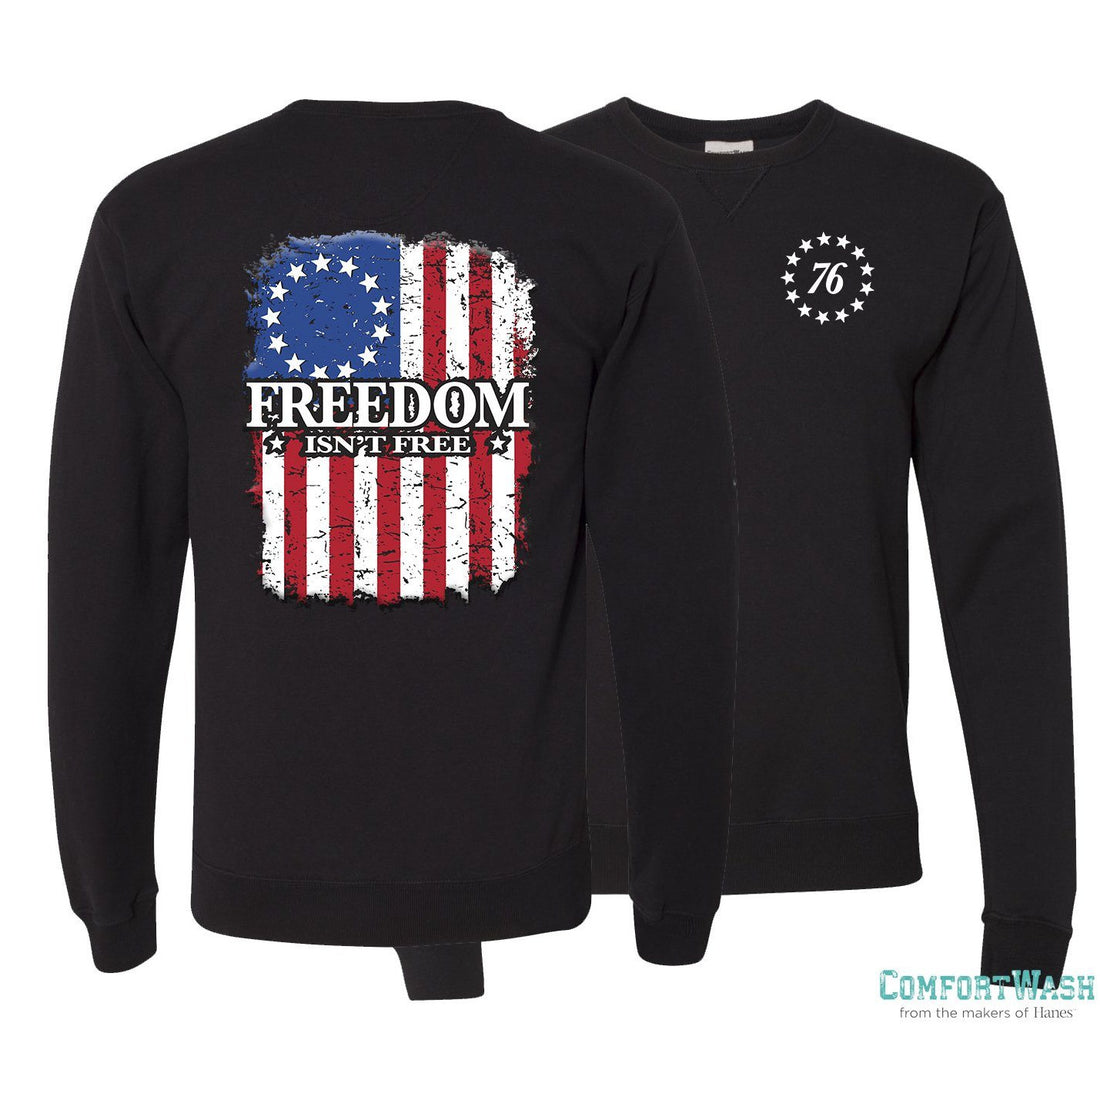 "Front and back of the granite USMC sweatshirt from Marine Corps Direct with the confederate flag on the back and the words ""Freedom isn't free"" written across it."